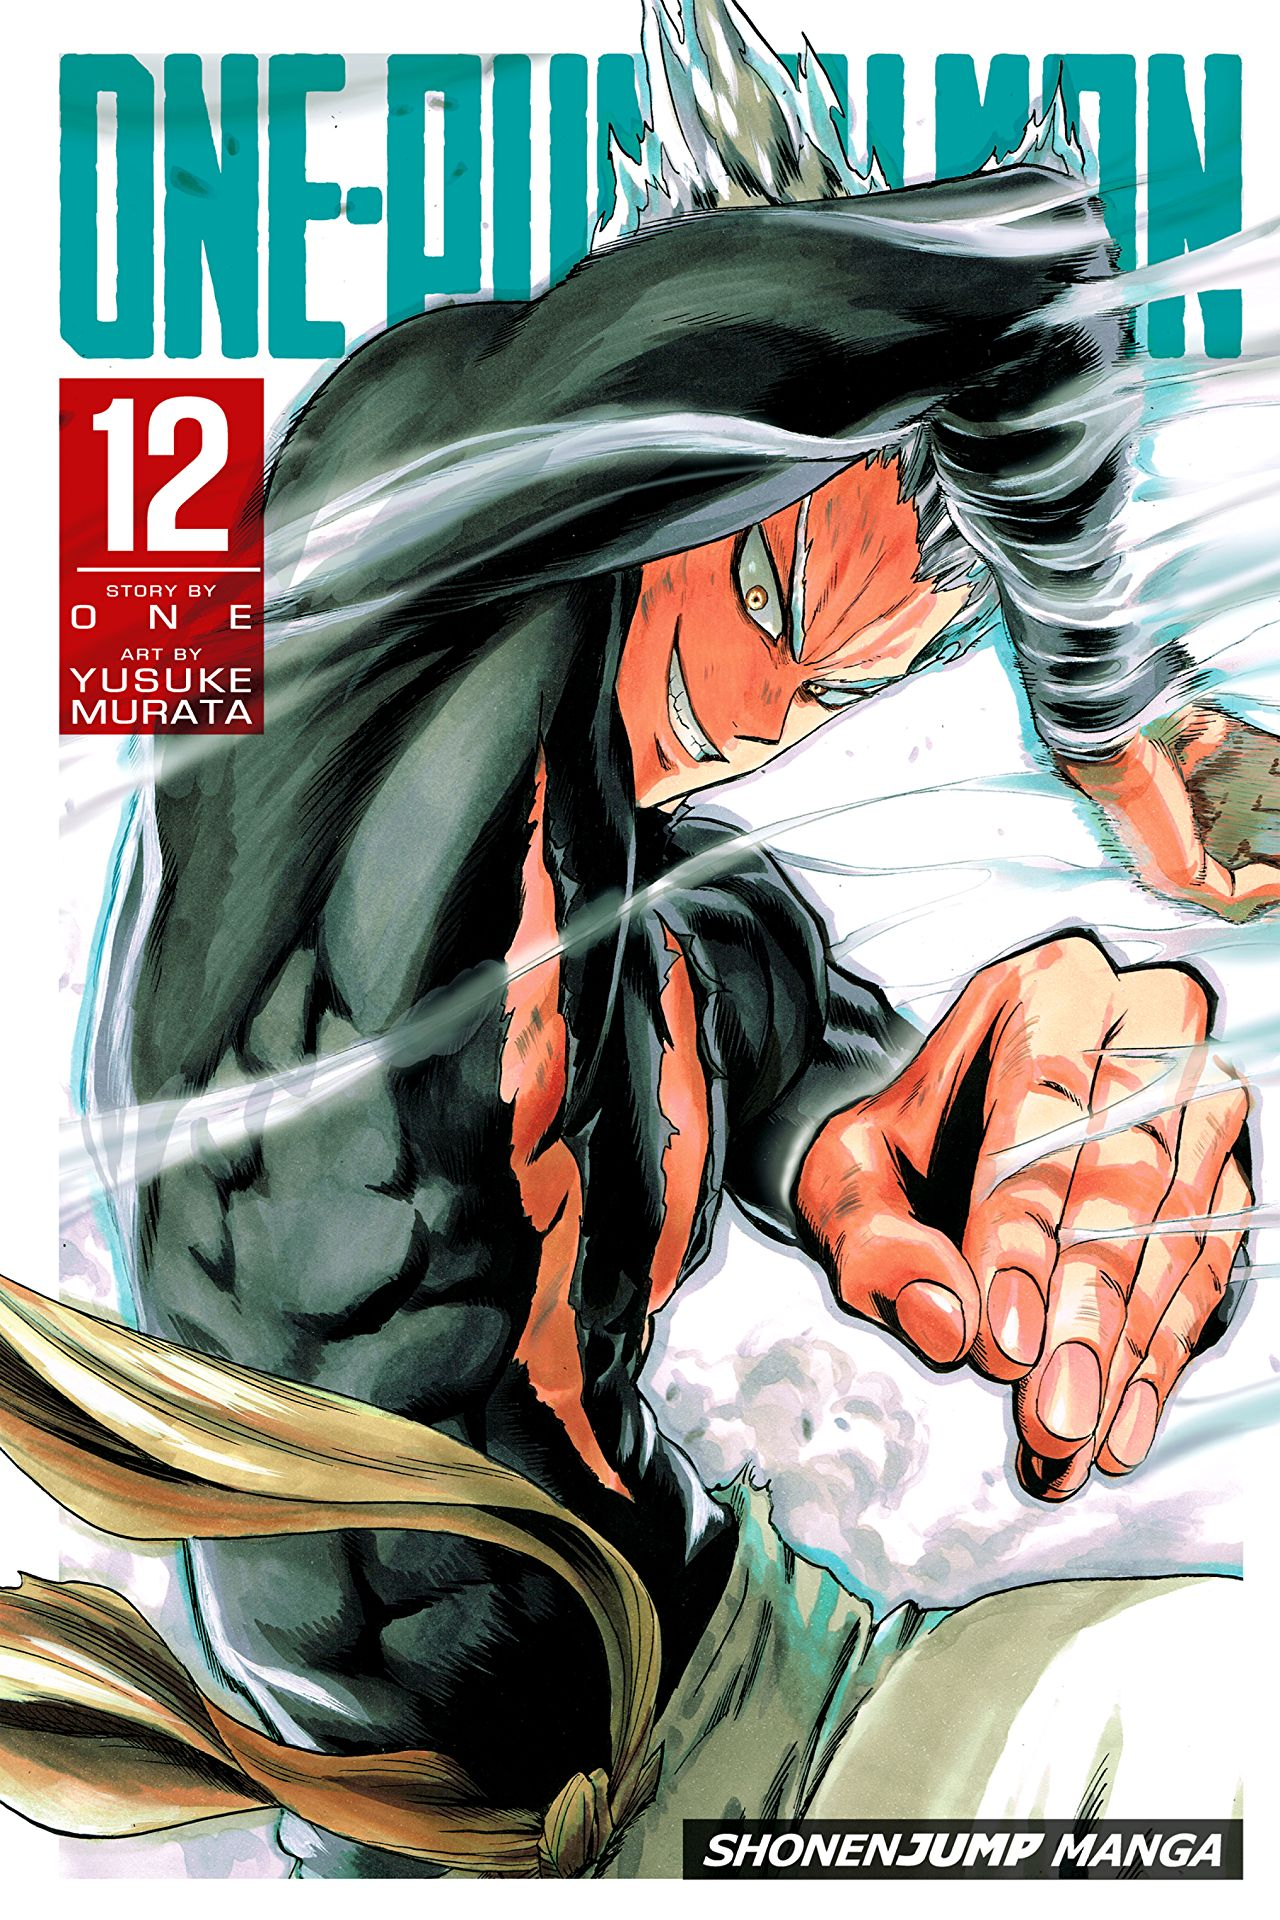 One-Punch Man Vol. 12 Review